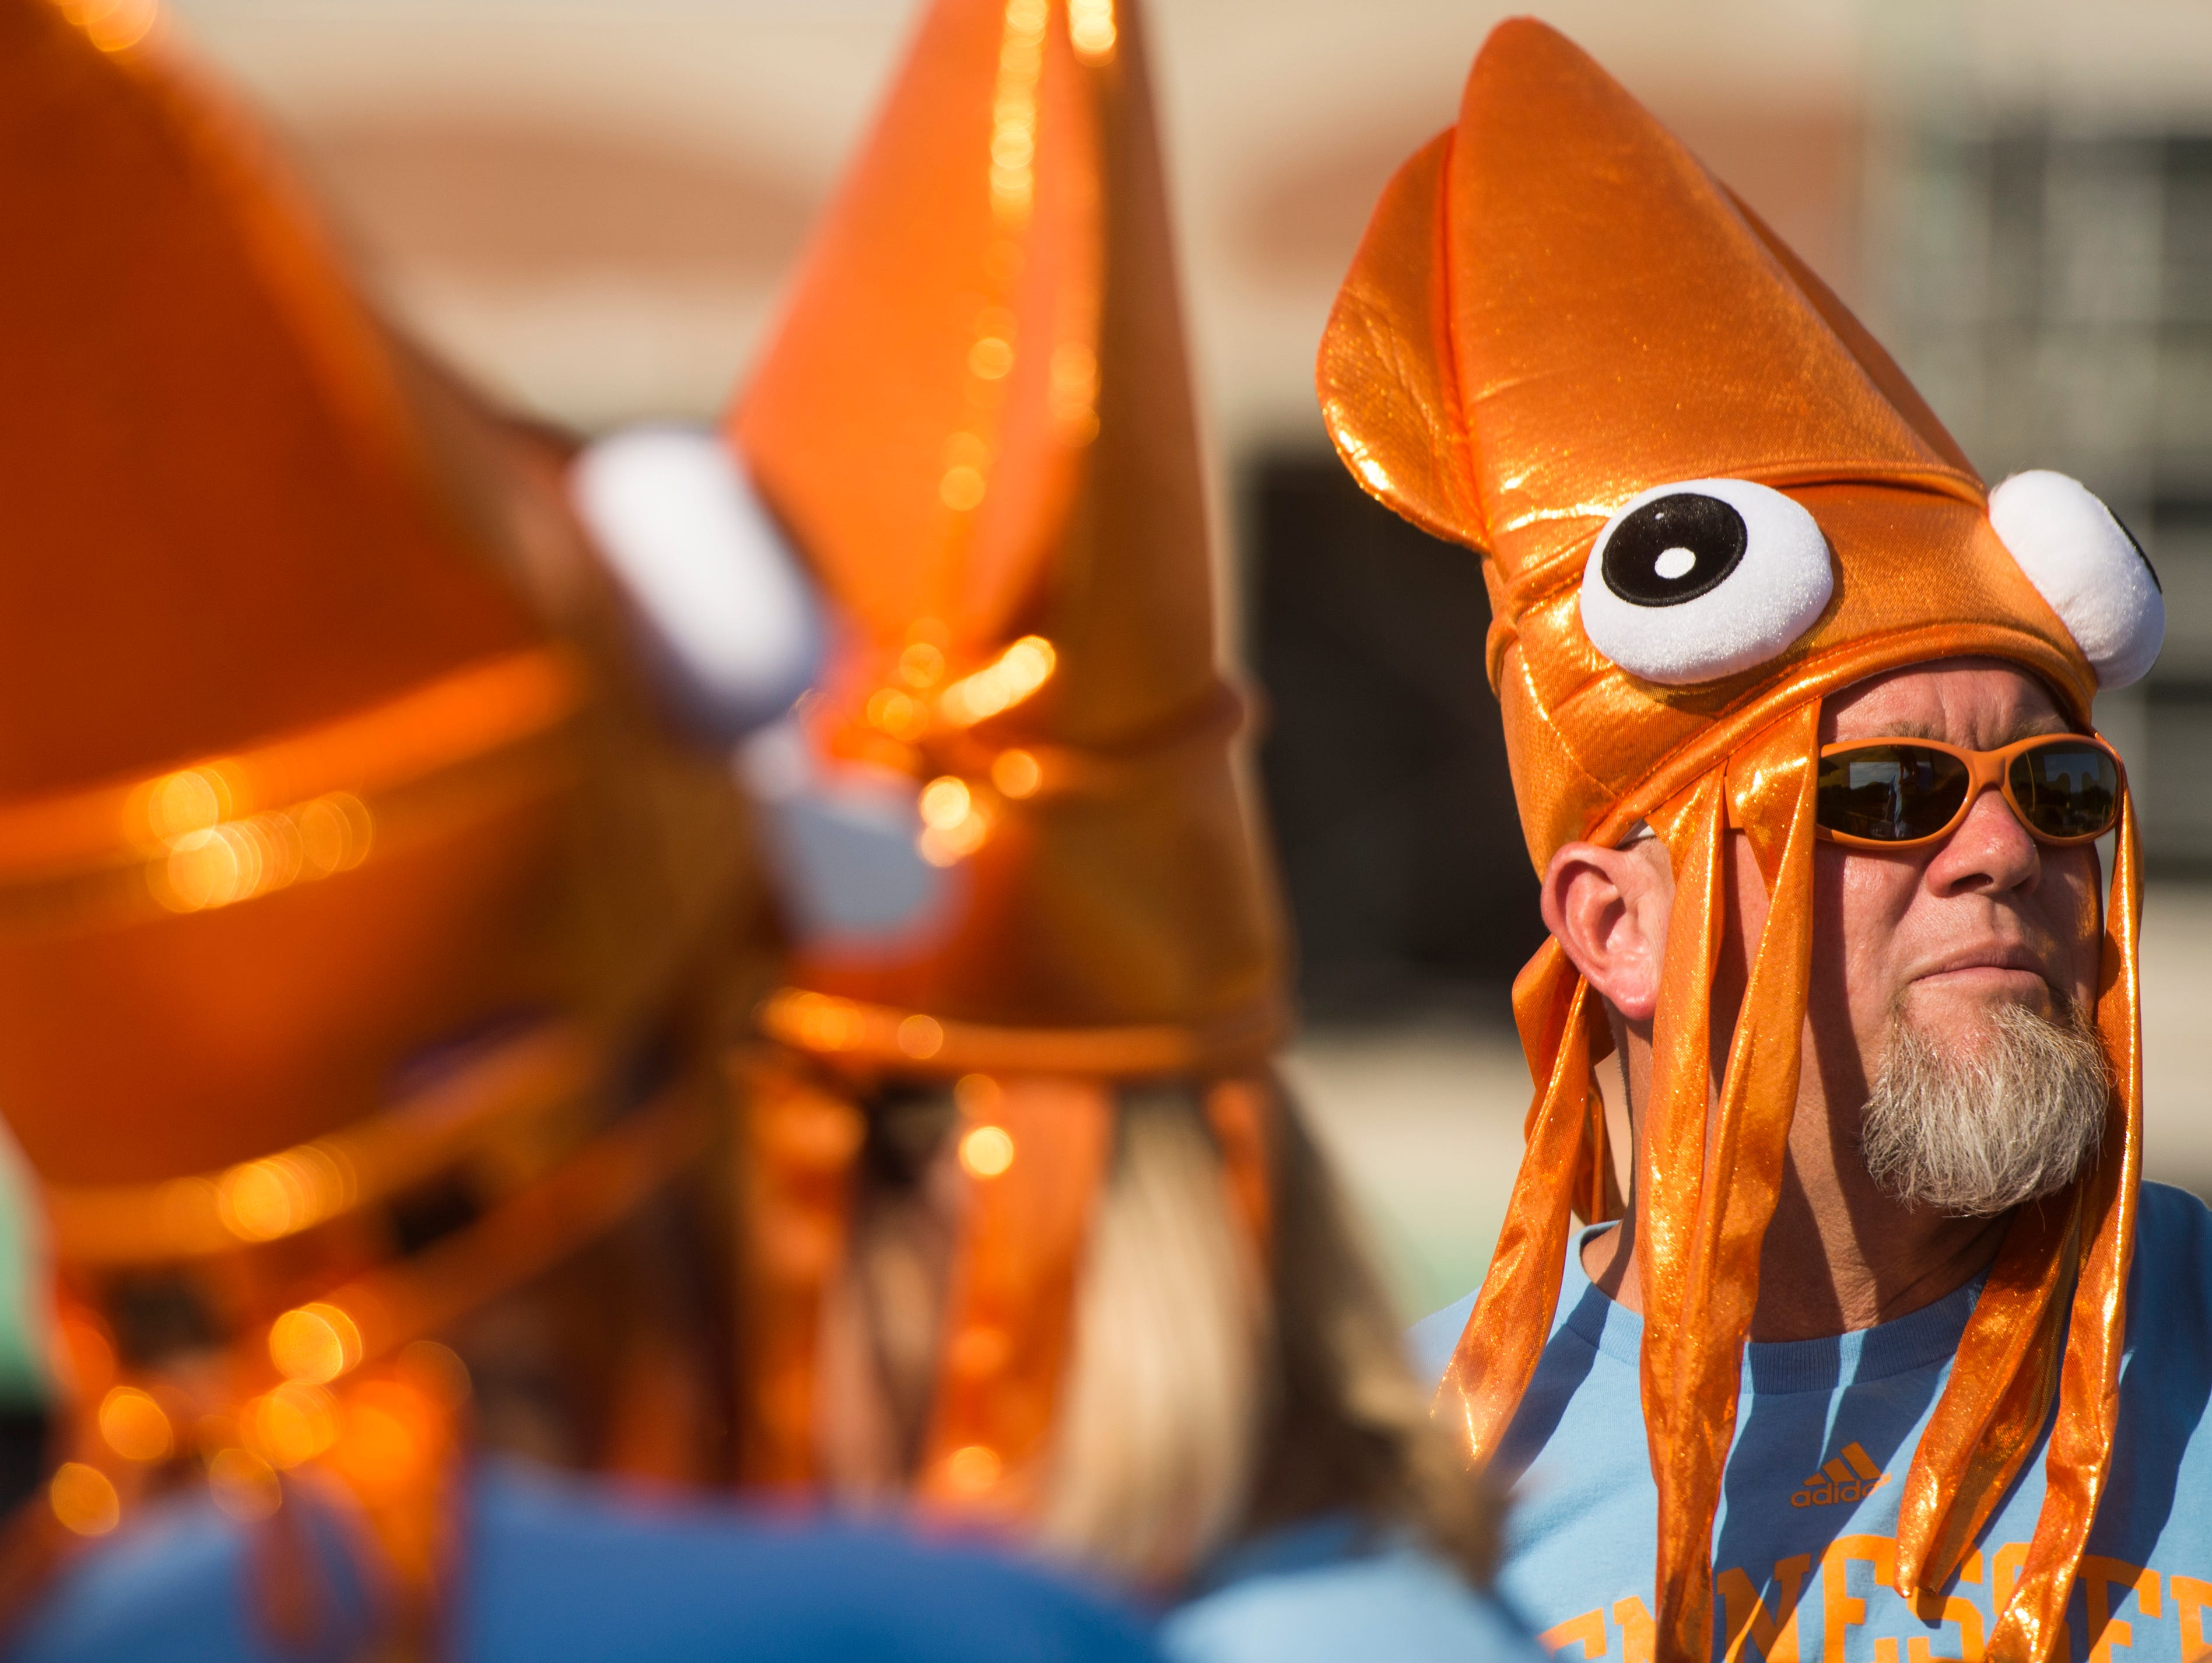 Michael Beler wears a squid hat before an NCAA Super Regional game between Tennessee and Texas A&M at Sherri Parker Lee Stadium on Friday, May 26, 2017. Tennessee defeated Texas A&M 8-1.